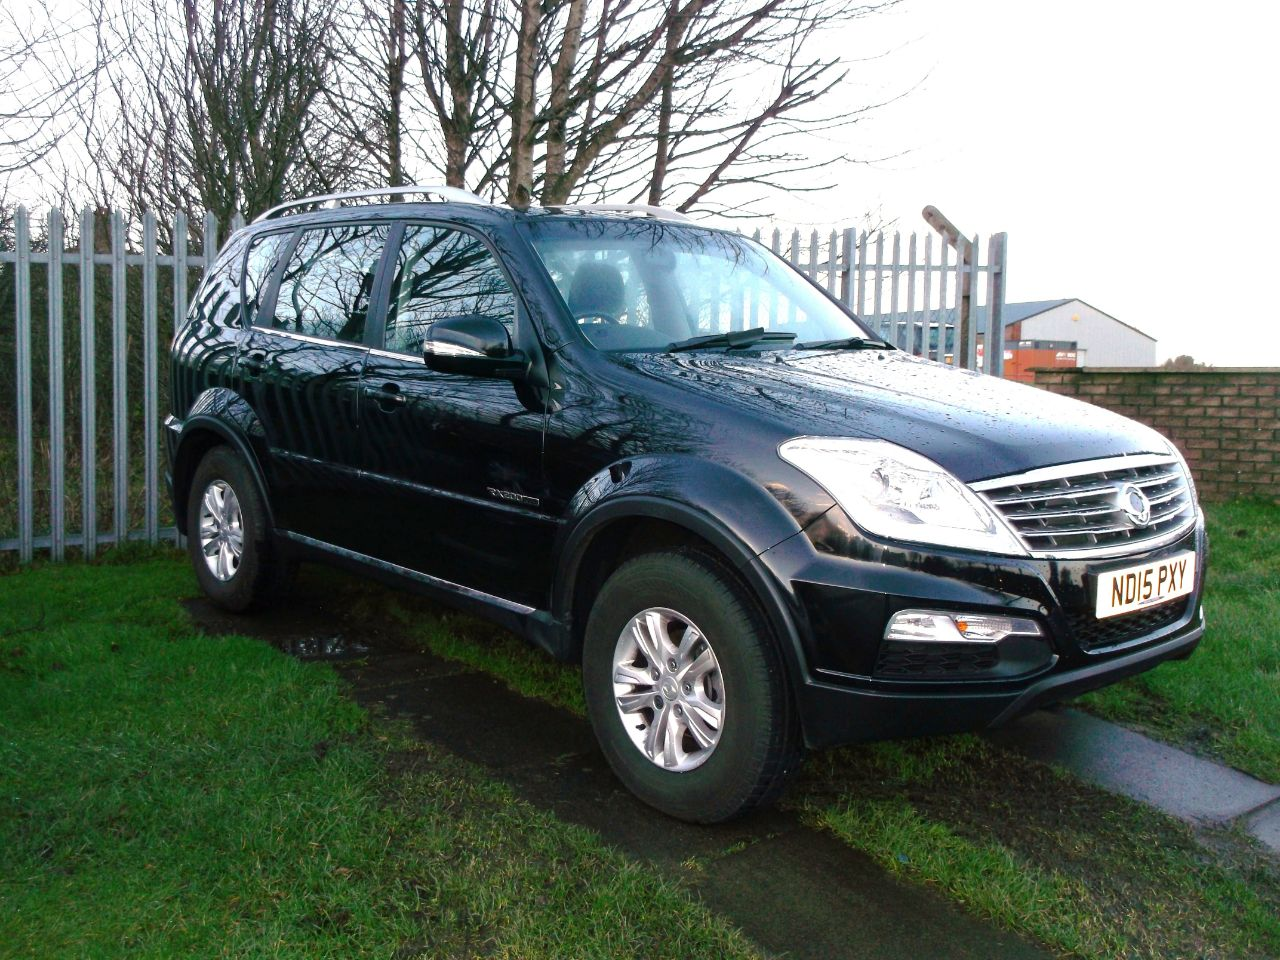 used ssangyong rexton w sx for sale in consett durham. Black Bedroom Furniture Sets. Home Design Ideas